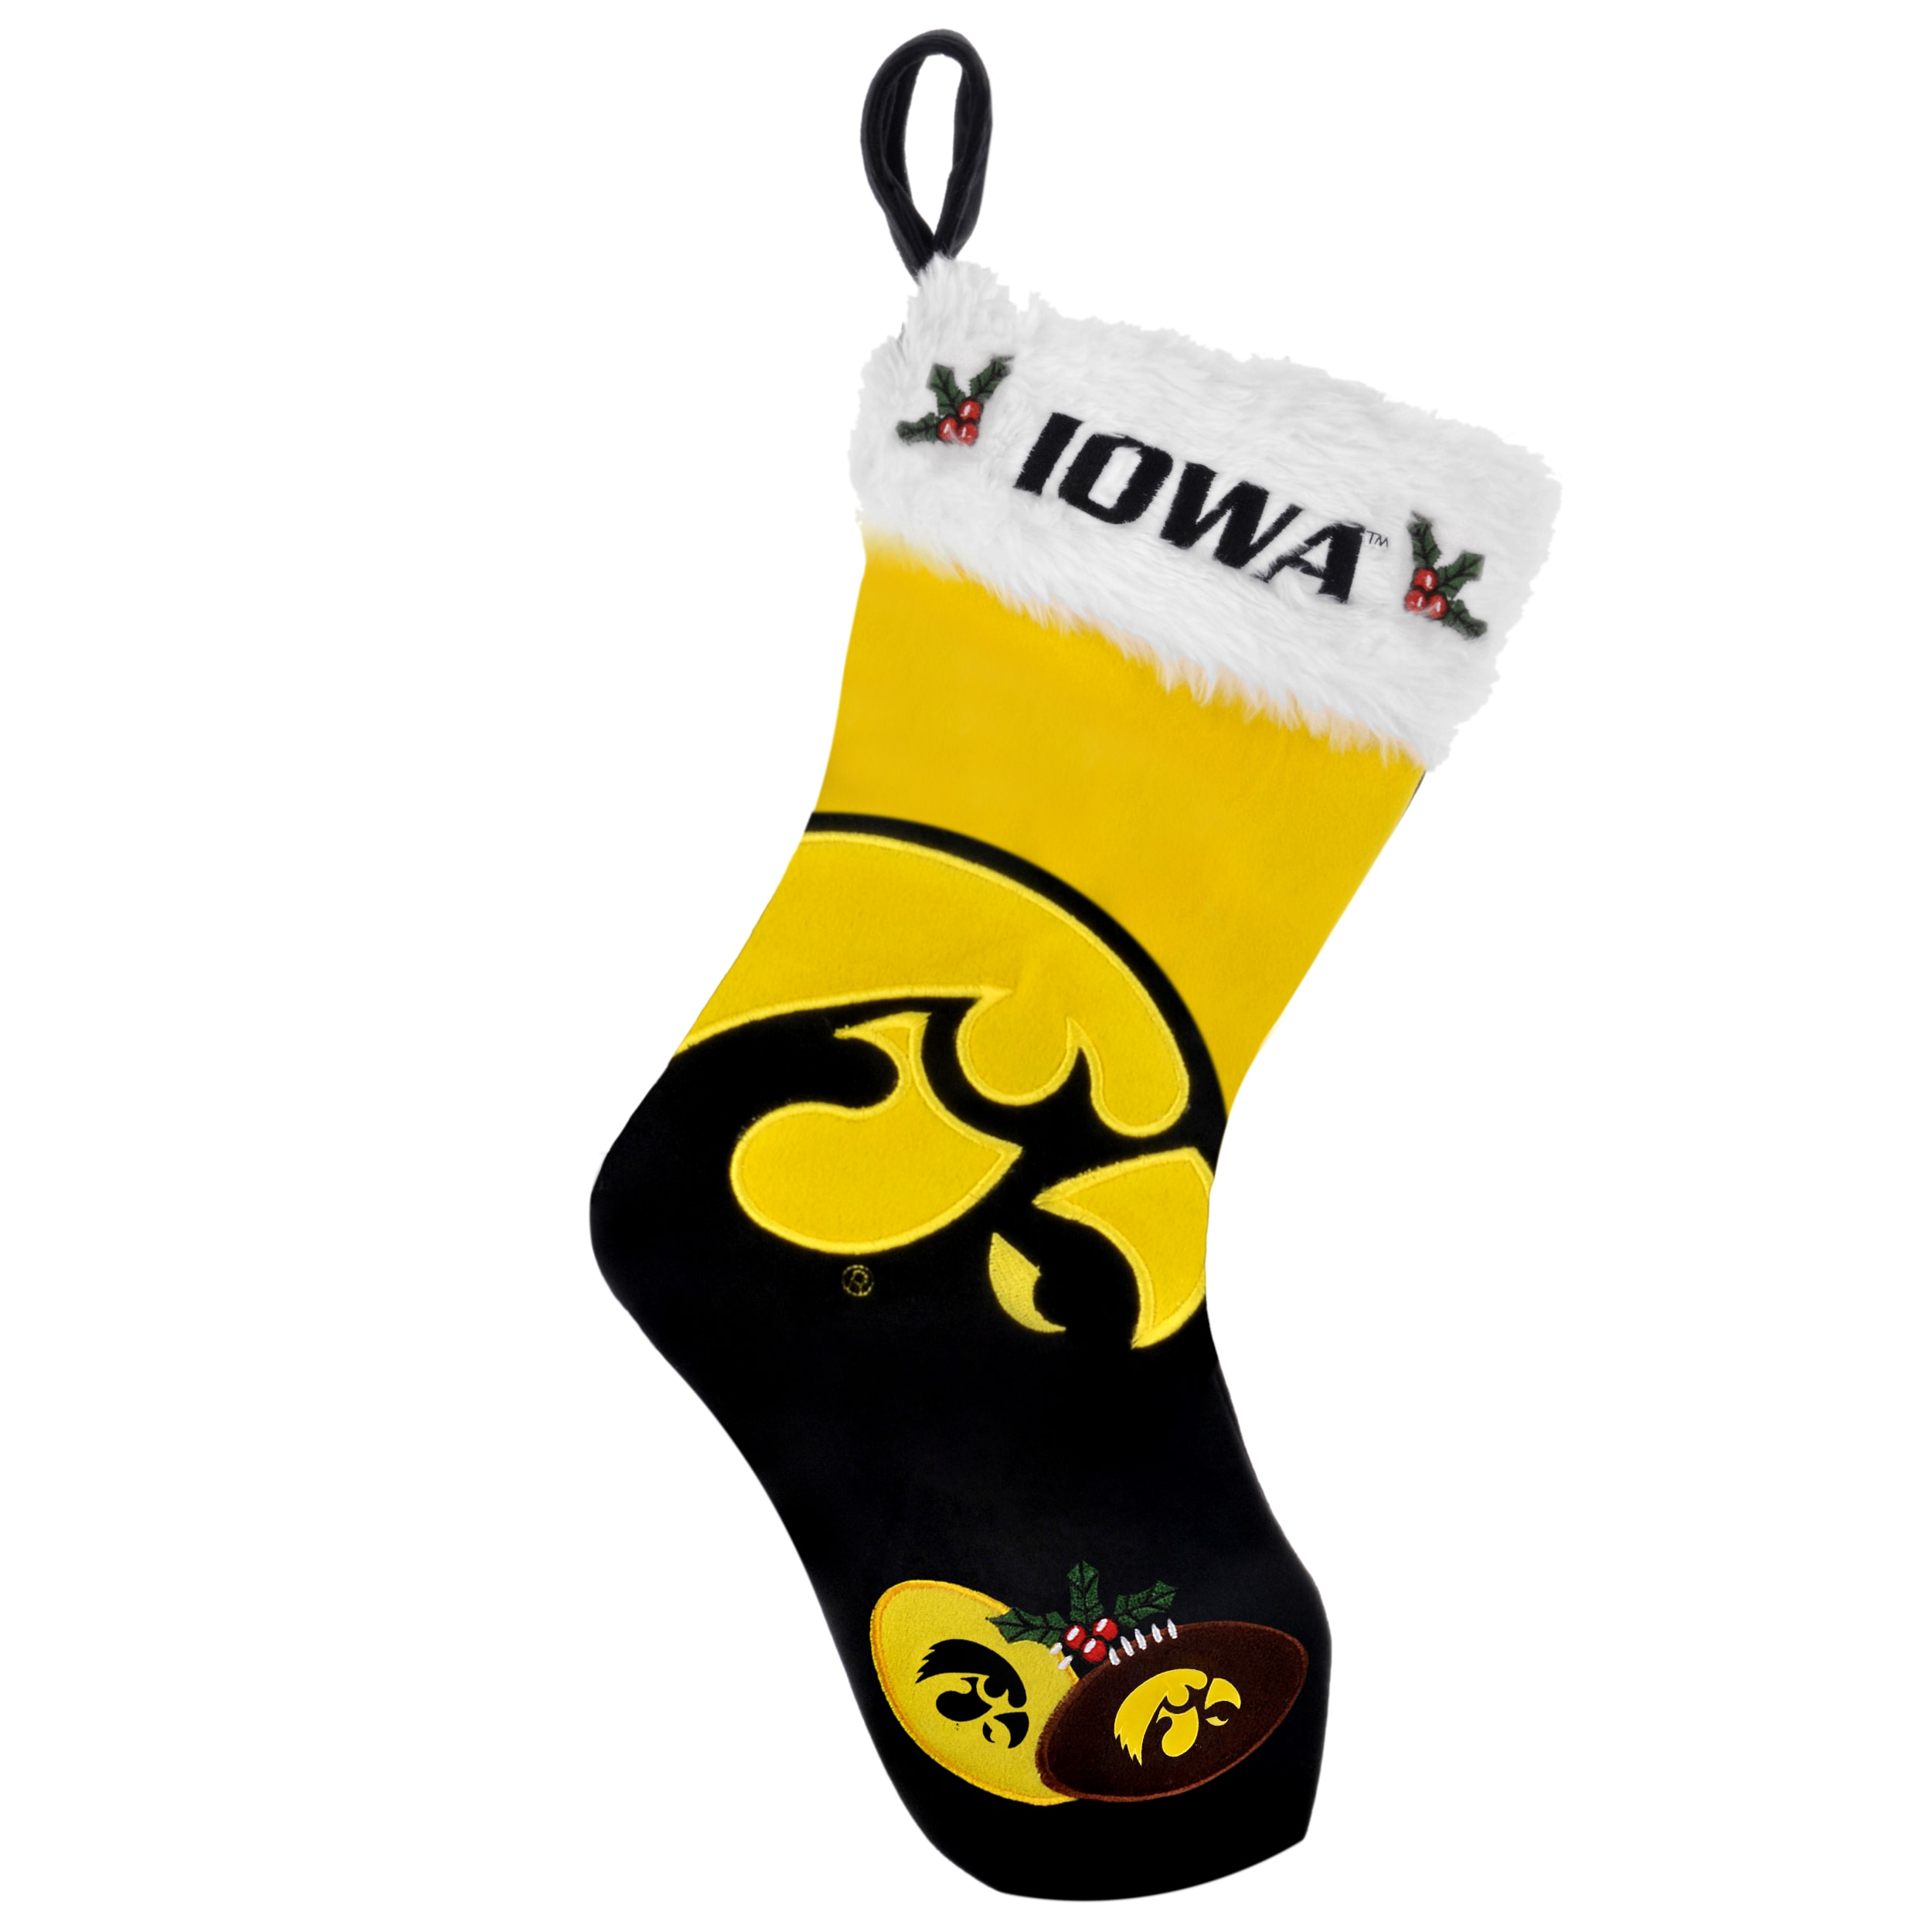 Iowa Hawkeyes 2011 Colorblock Christmas Stocking